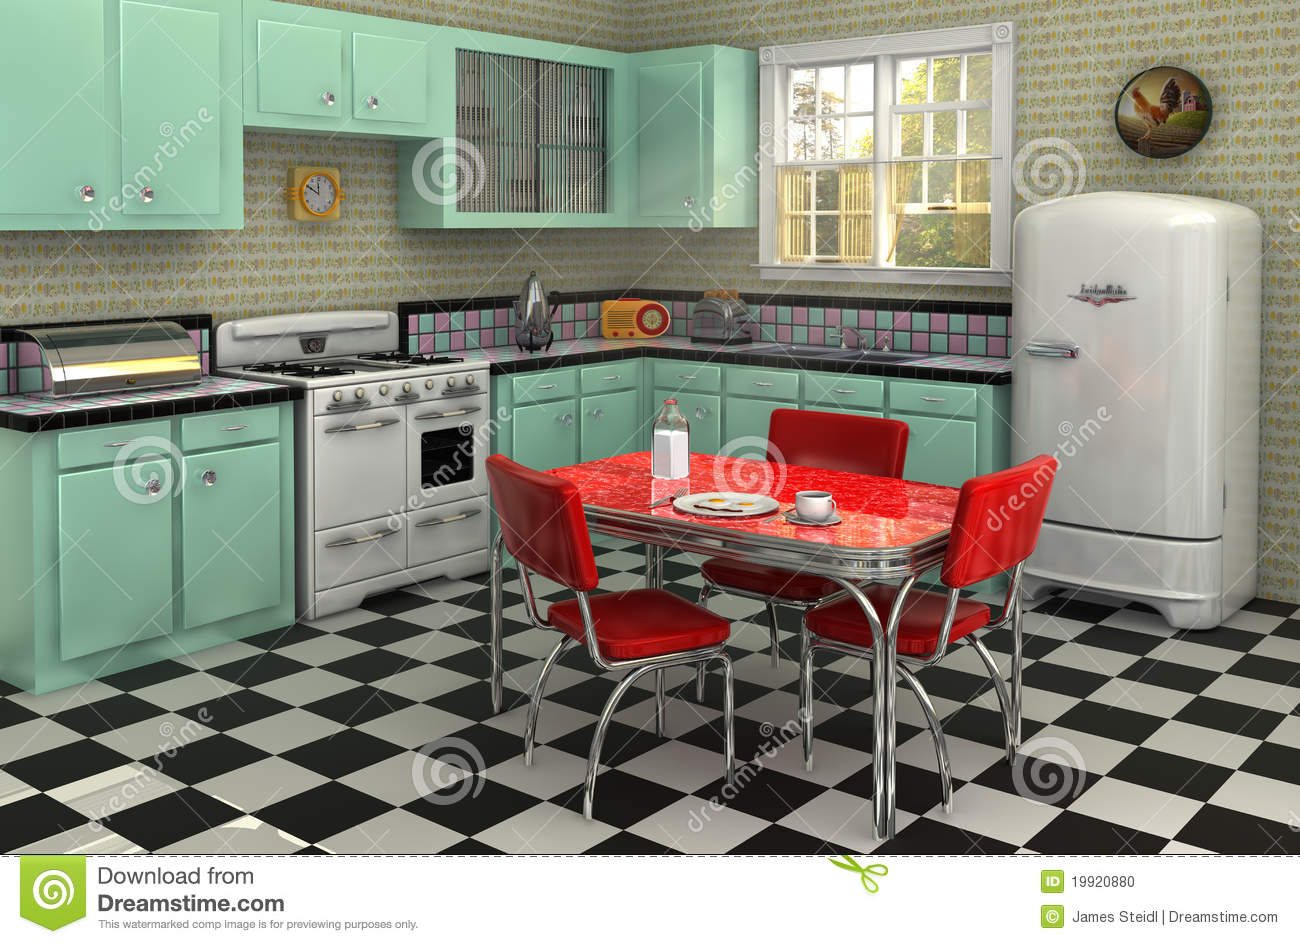 1950 39 s kitchen stock illustration image of american for Cuisine retro deco